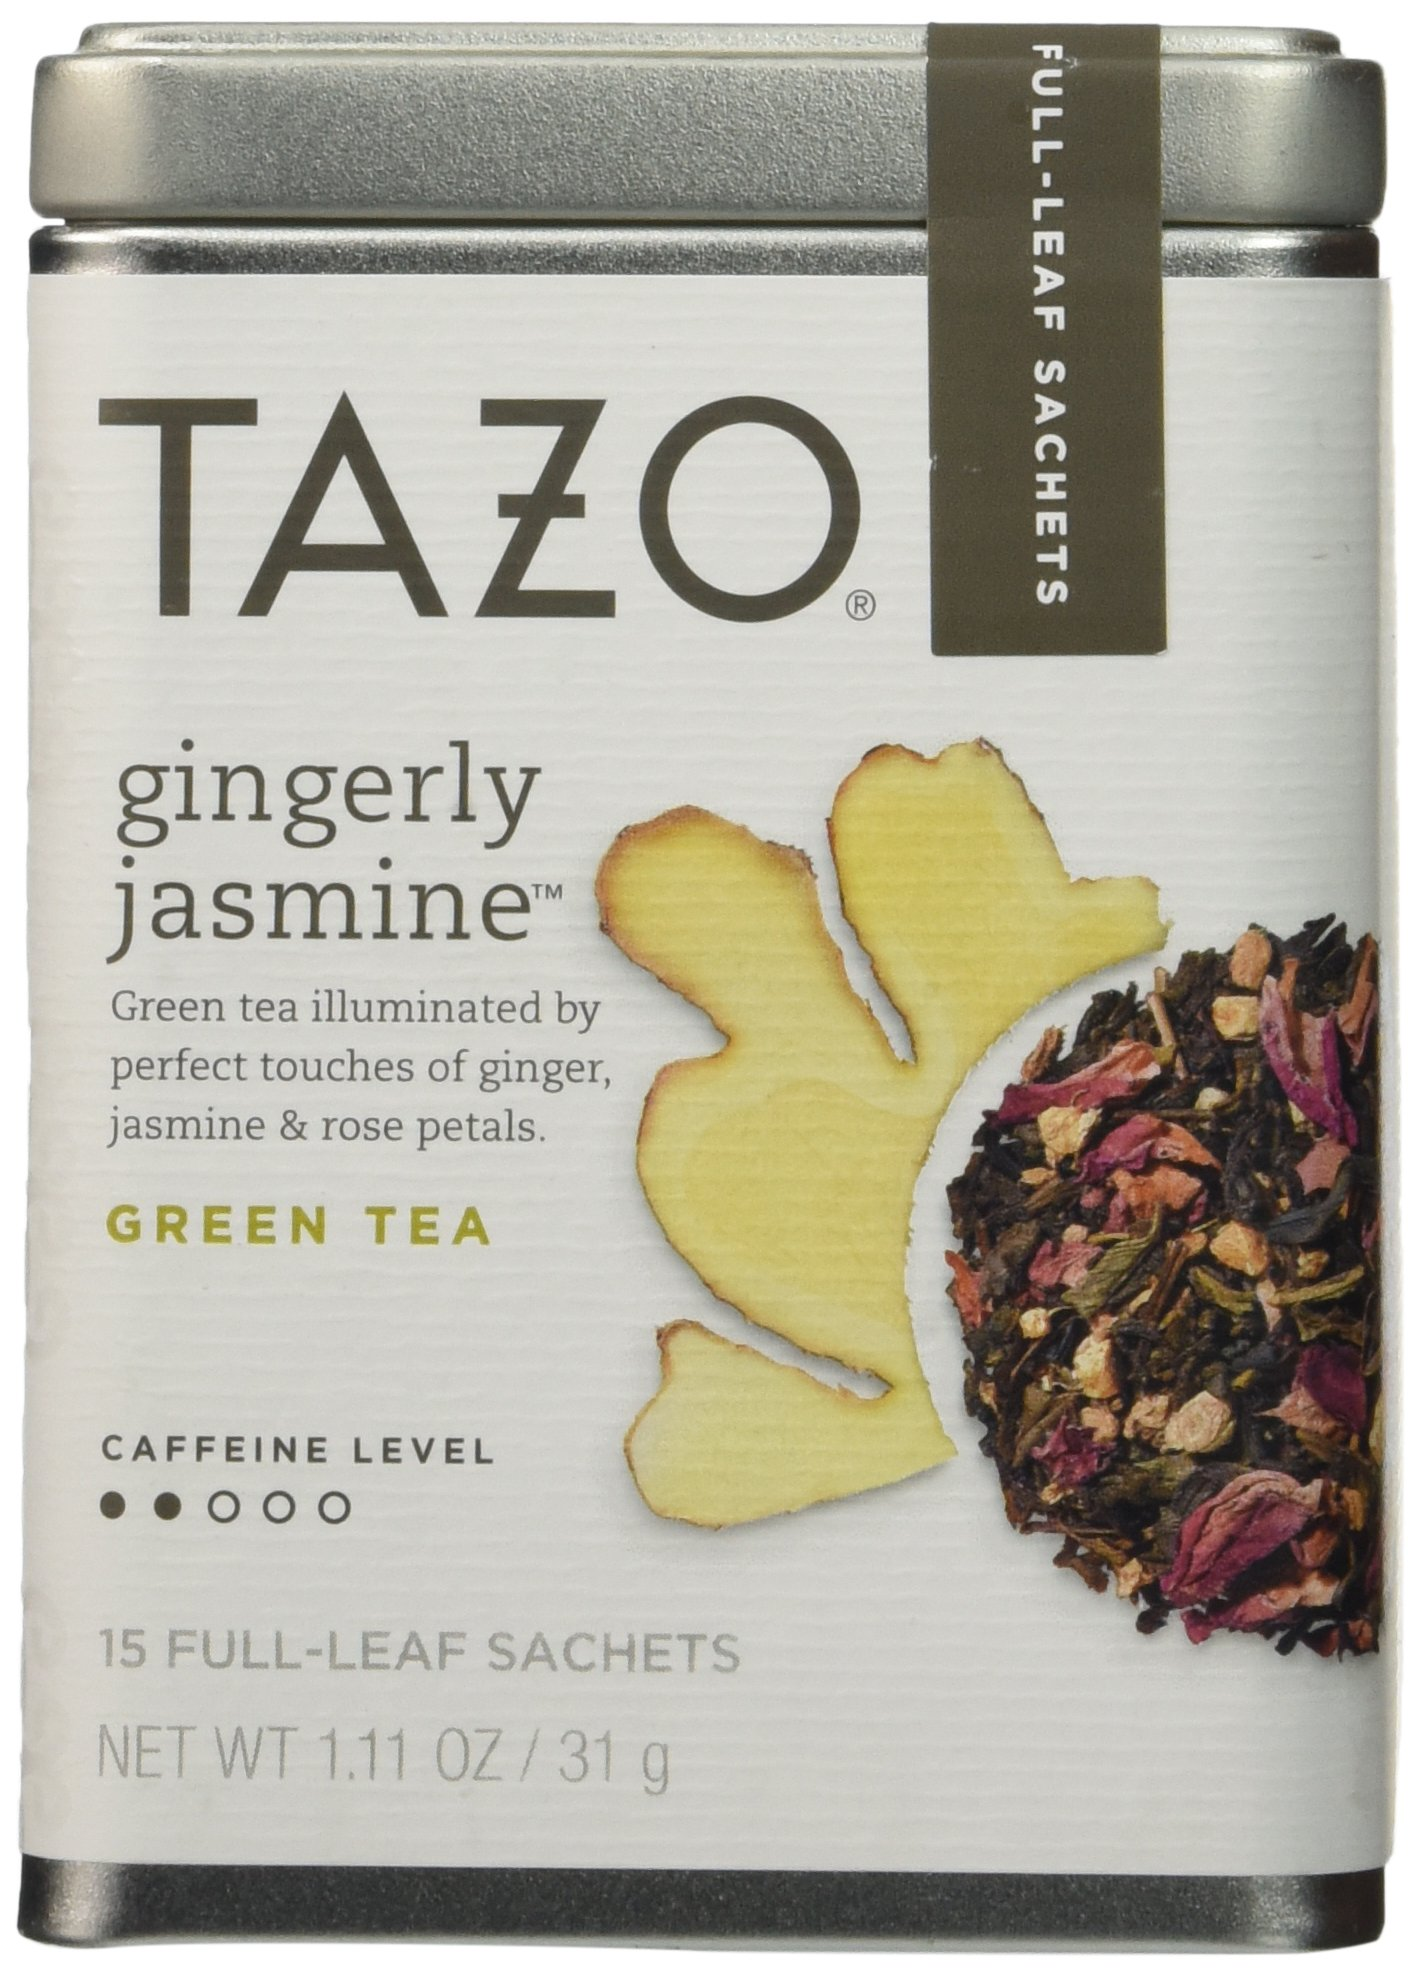 Tazo Gingerly Jasmine Green Tea With Caffeine, 1 Pack with 15 Full-Leaf Sachets